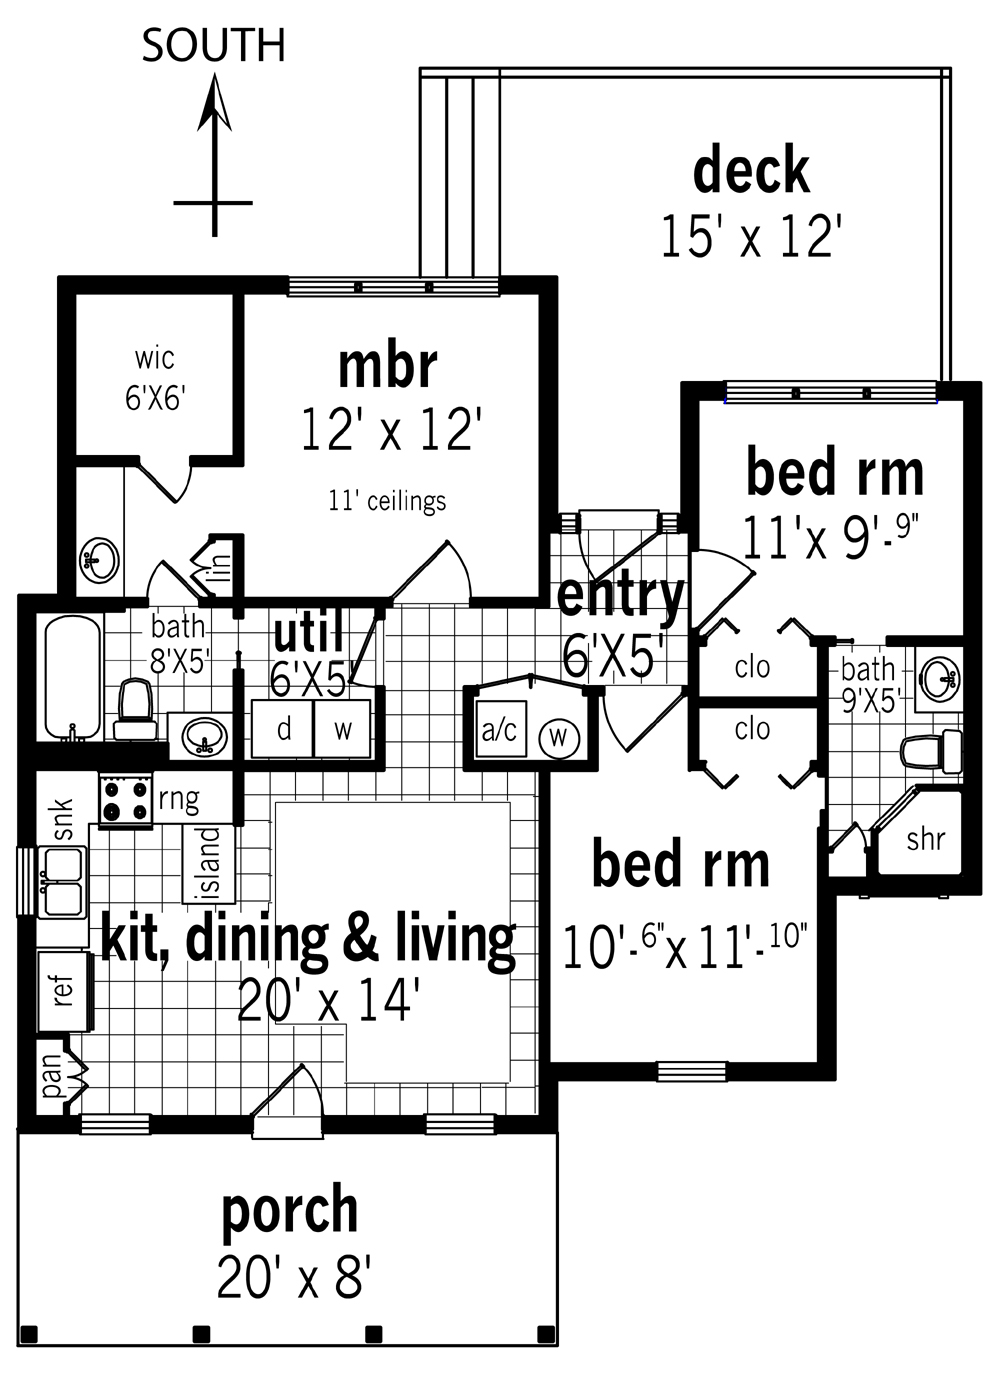 3 Bedrooms And 2.5 Baths